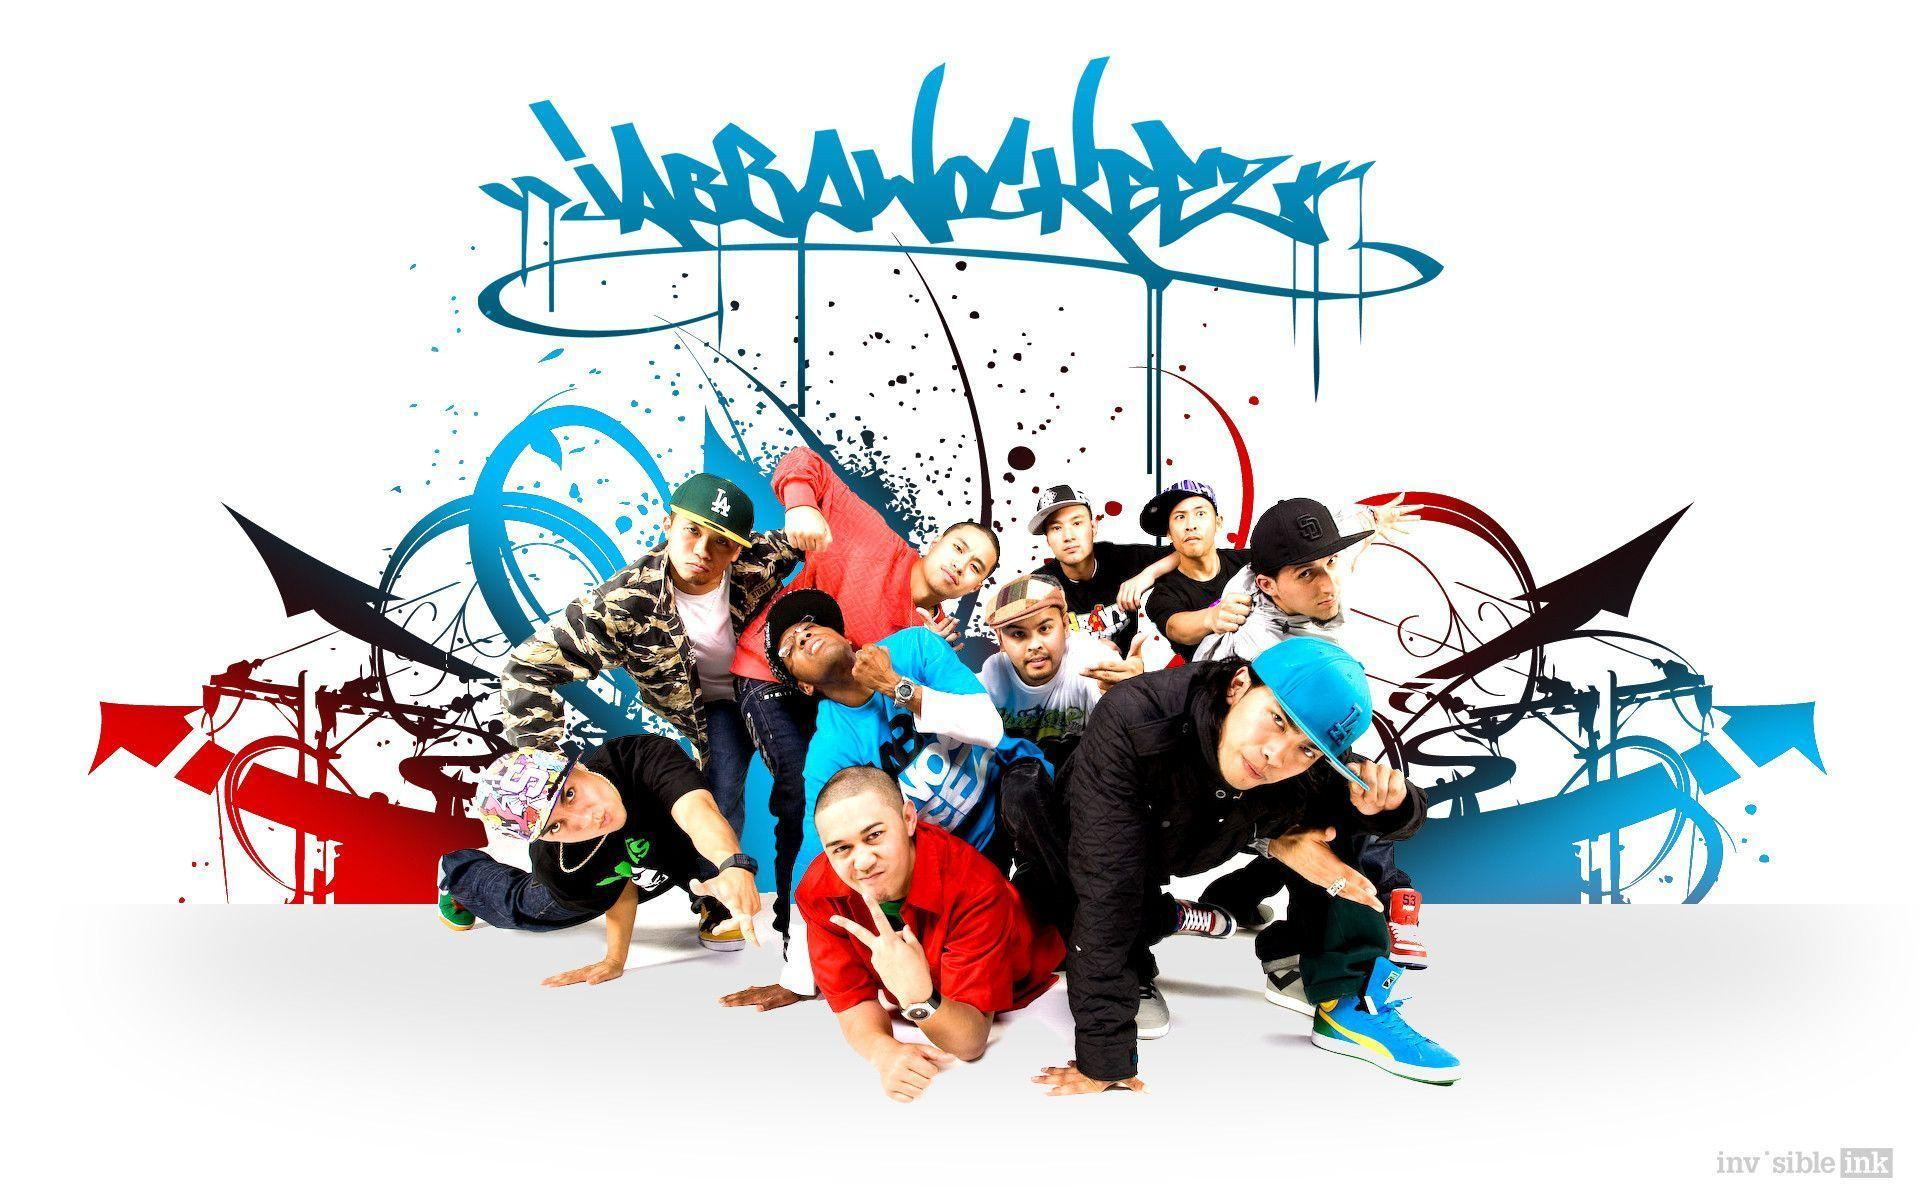 Jabbawockeez Wallpapers 3d Jabbawockeez Wallpapers 2015 Wallpaper Cave